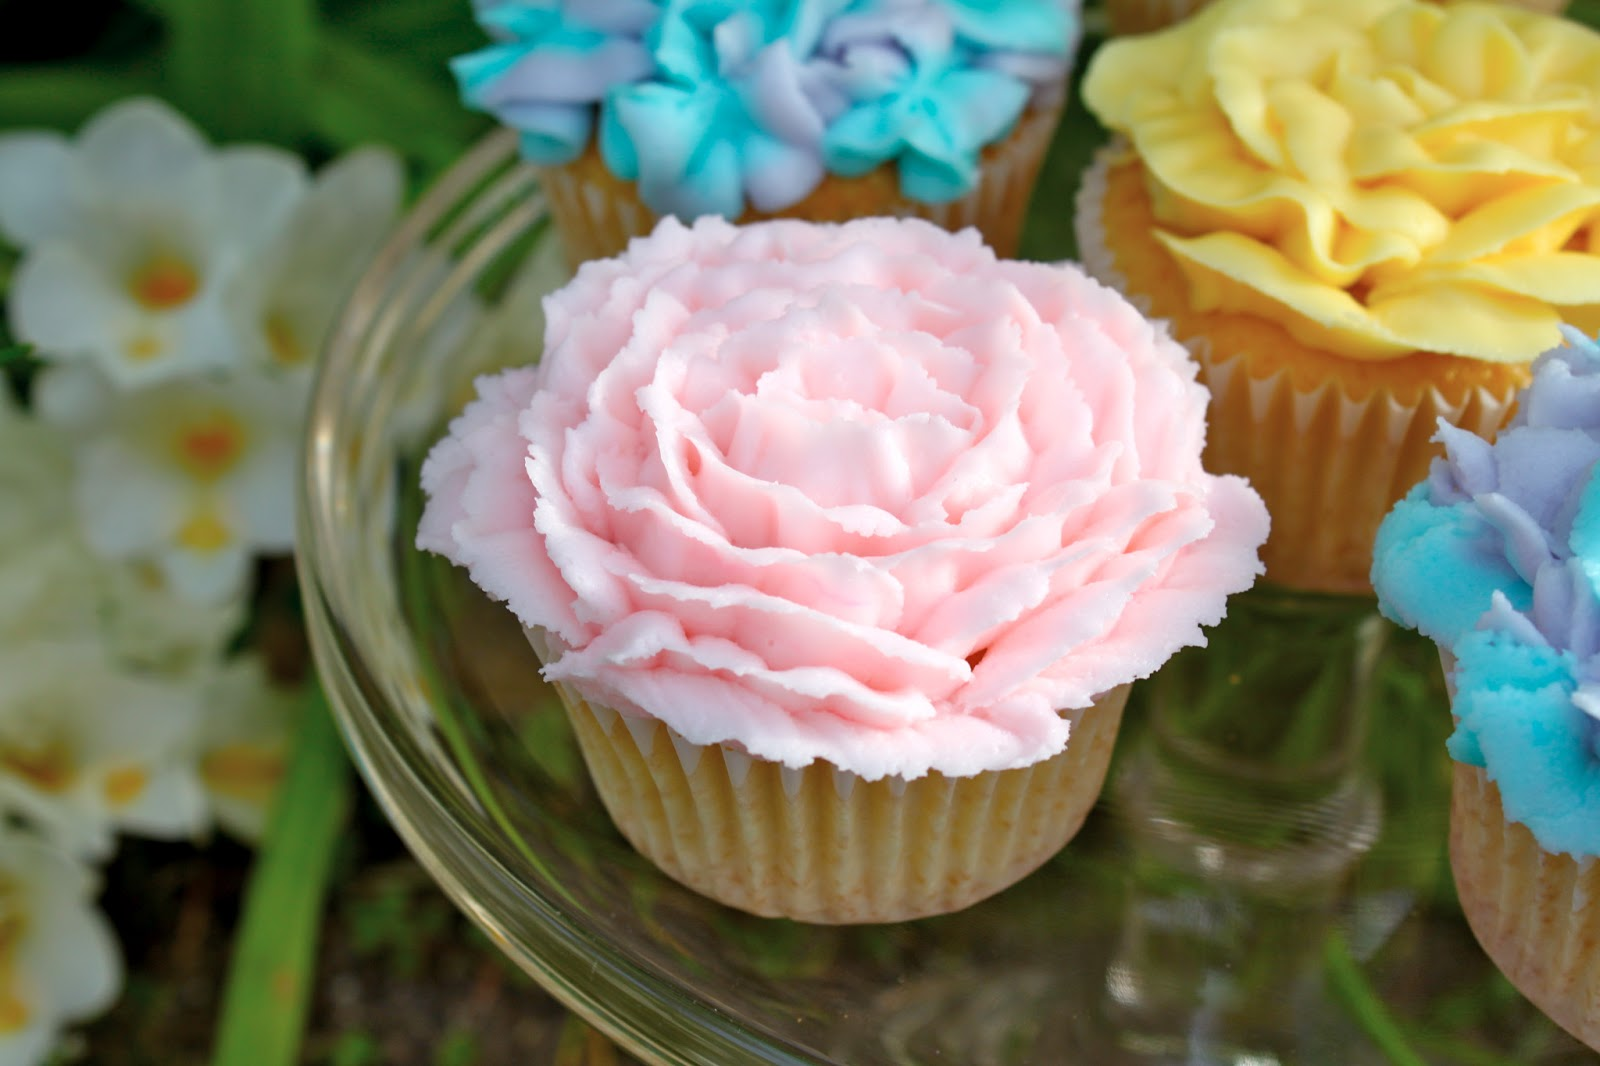 Flower Cupcakes Decorate to Celebrate